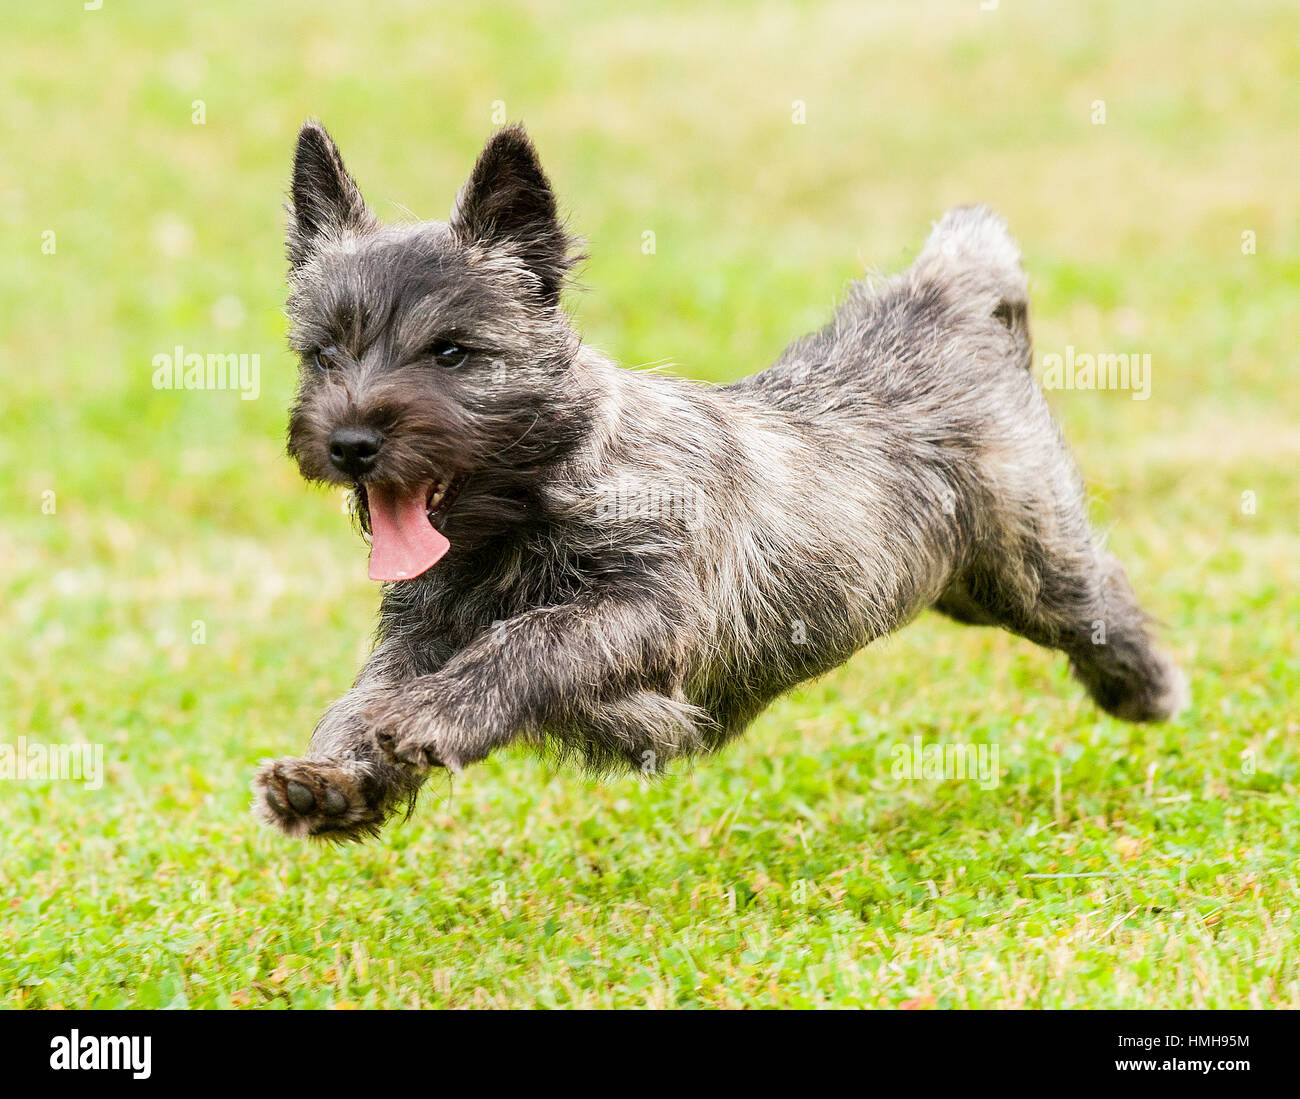 Adorable Cairn Terrier Puppy Dog Running Playing Frolicking Outside